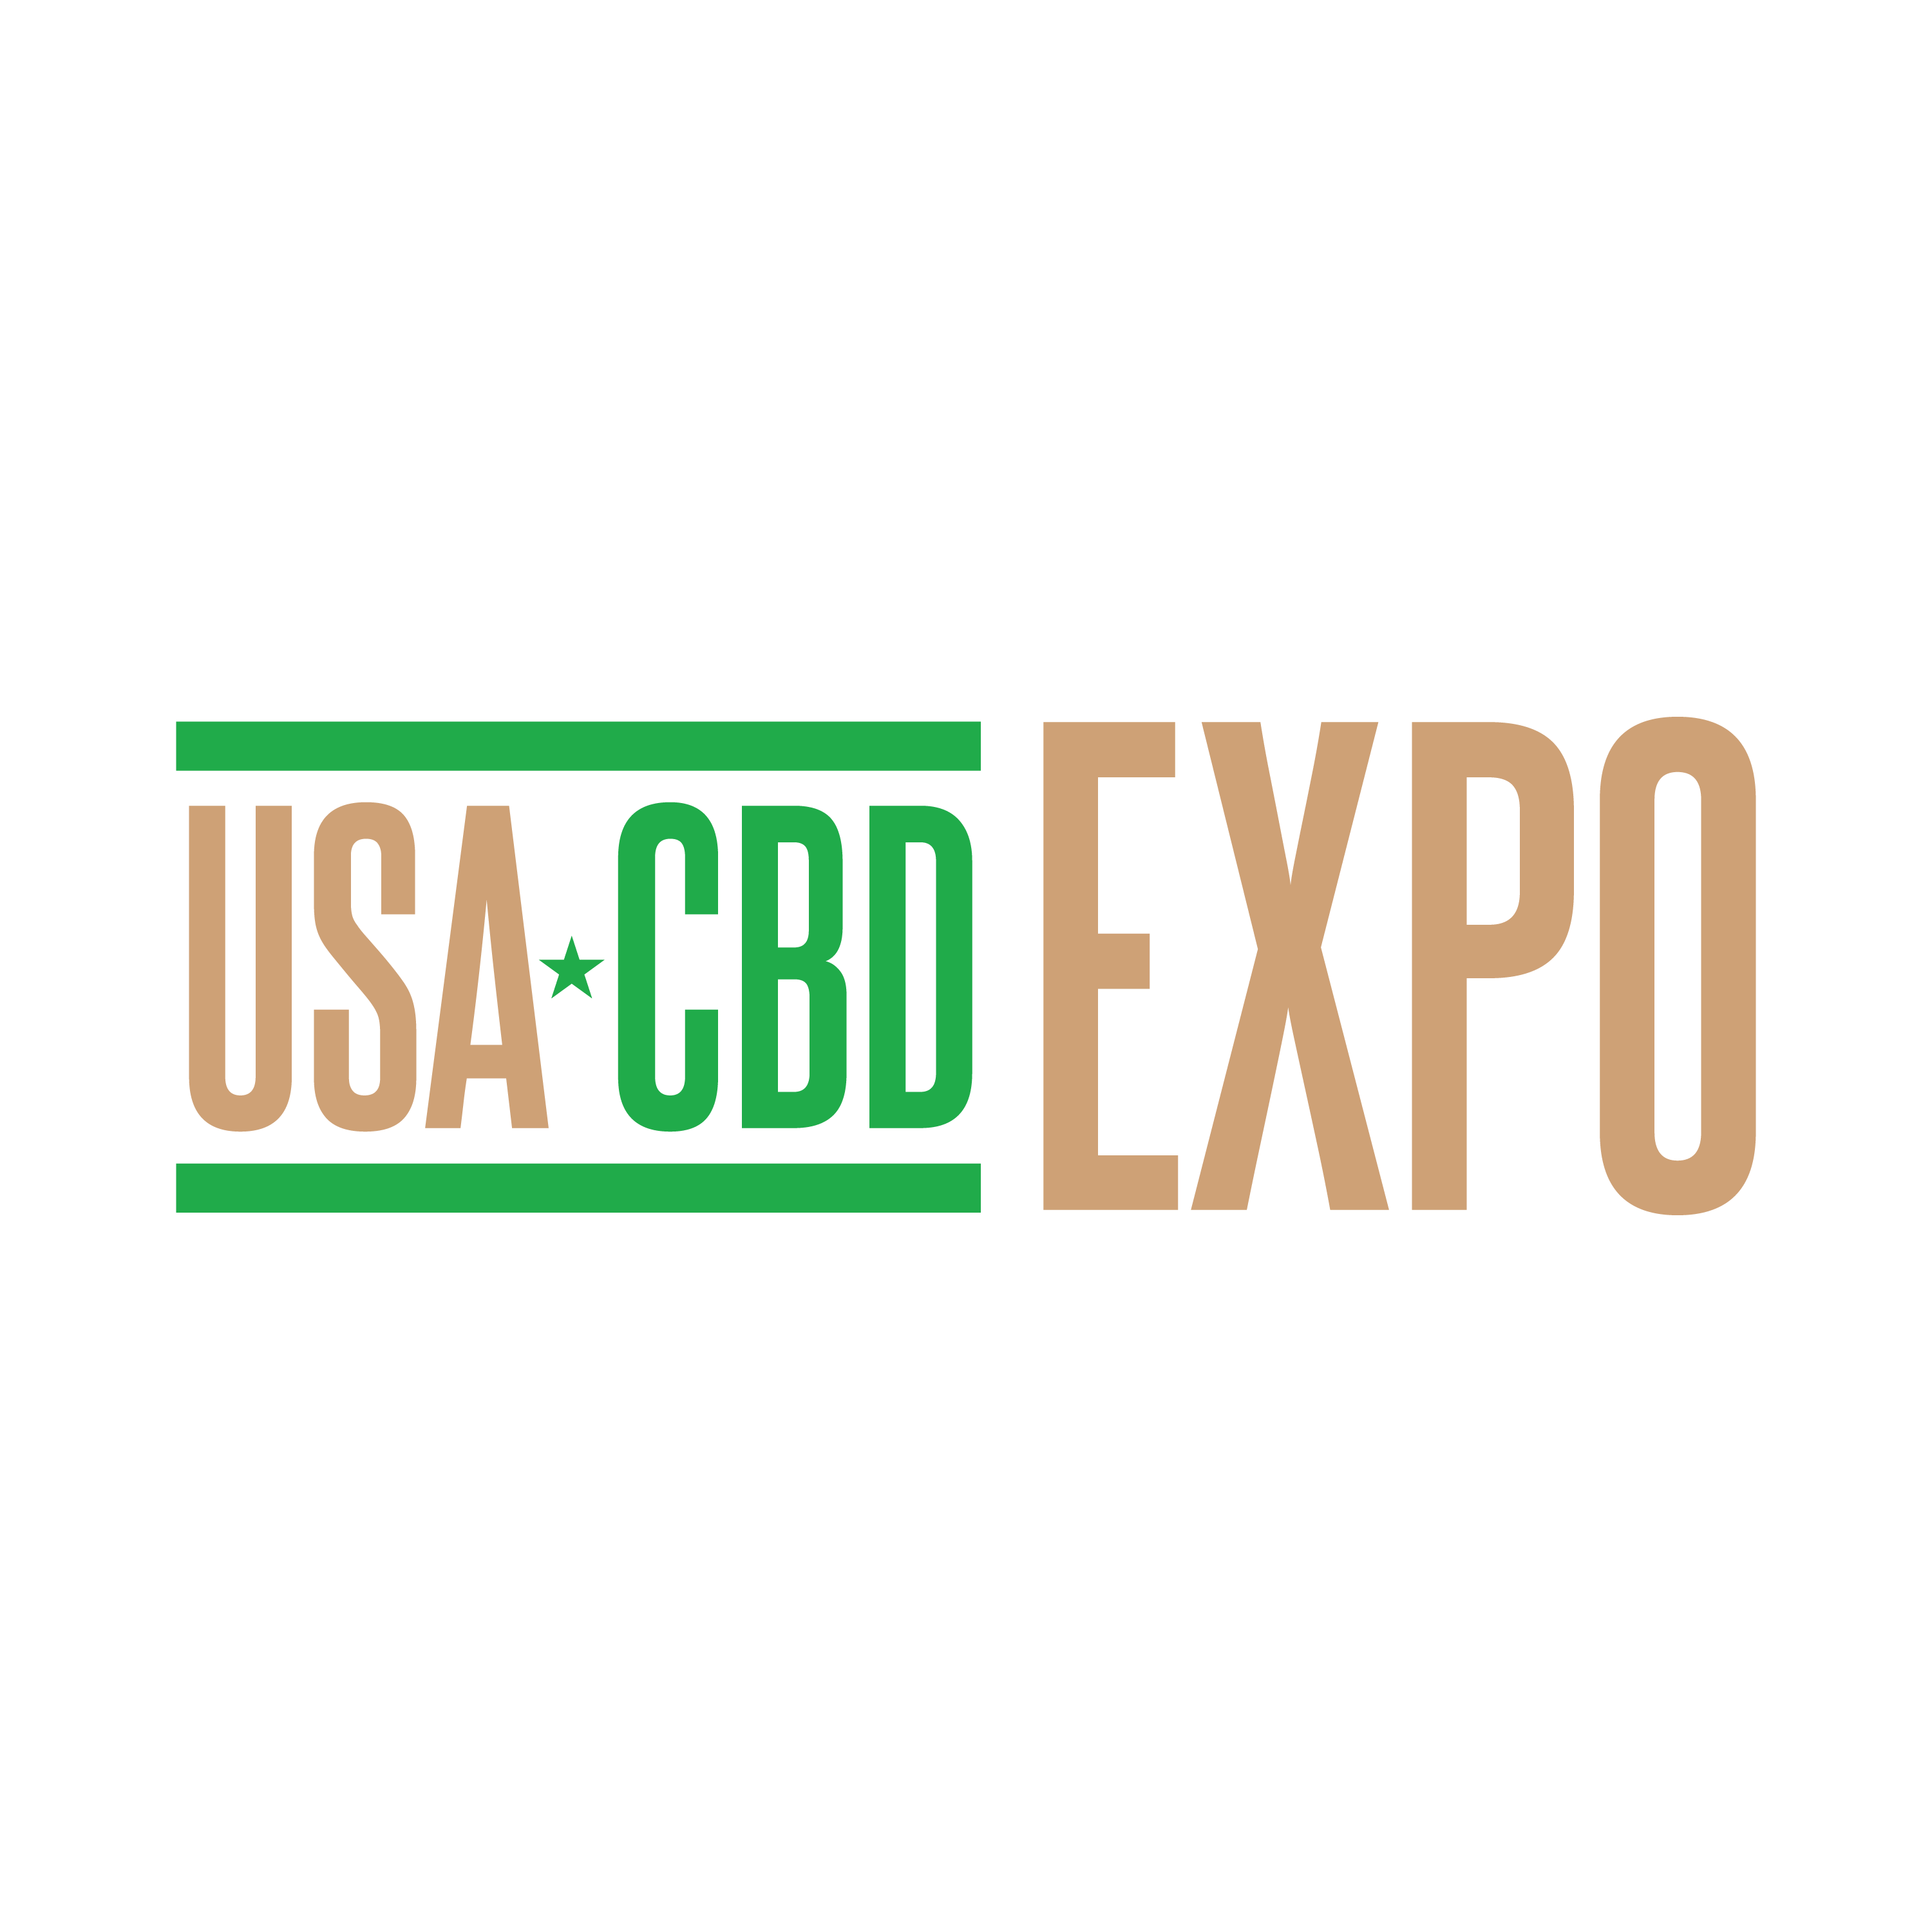 Episode 15: How to Advertise your CBD Business Effectively